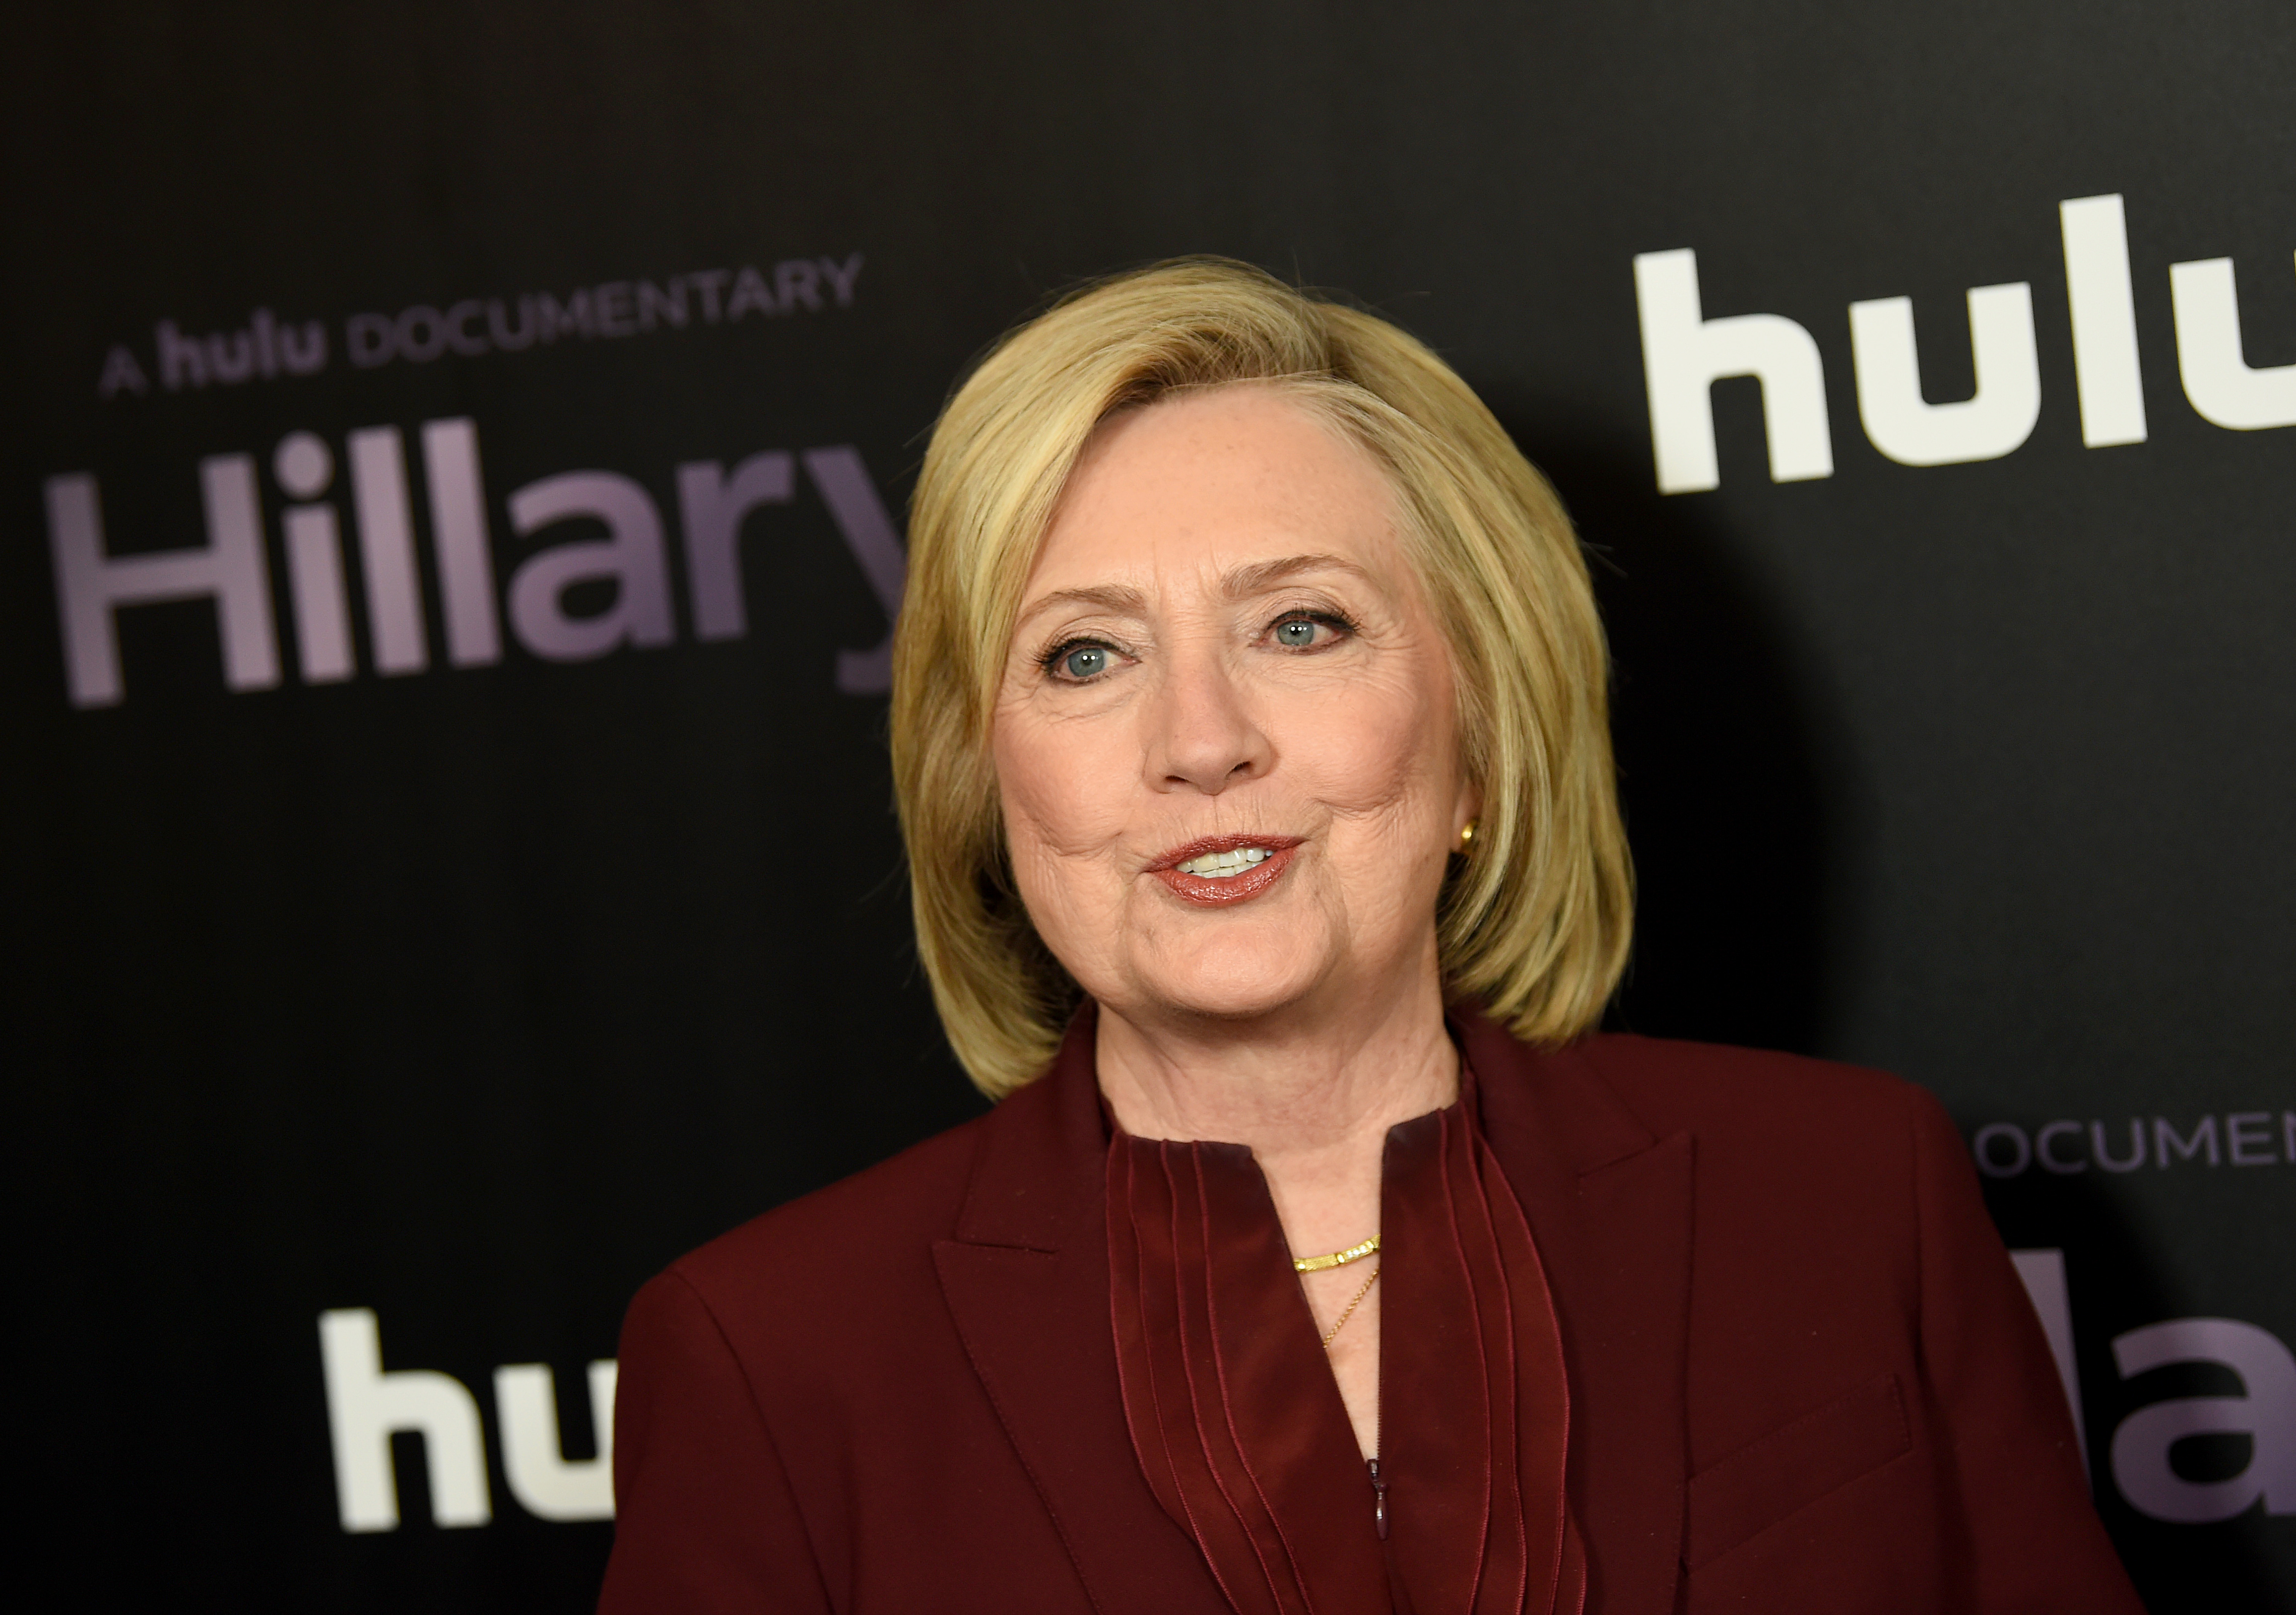 "NEW YORK, NEW YORK - MARCH 04: Hillary Clinton attends the ""Hillary"" New York Premiere at Directors Guild of America Theater on March 04, 2020 in New York City. (Photo by Dimitrios Kambouris/Getty Images)"